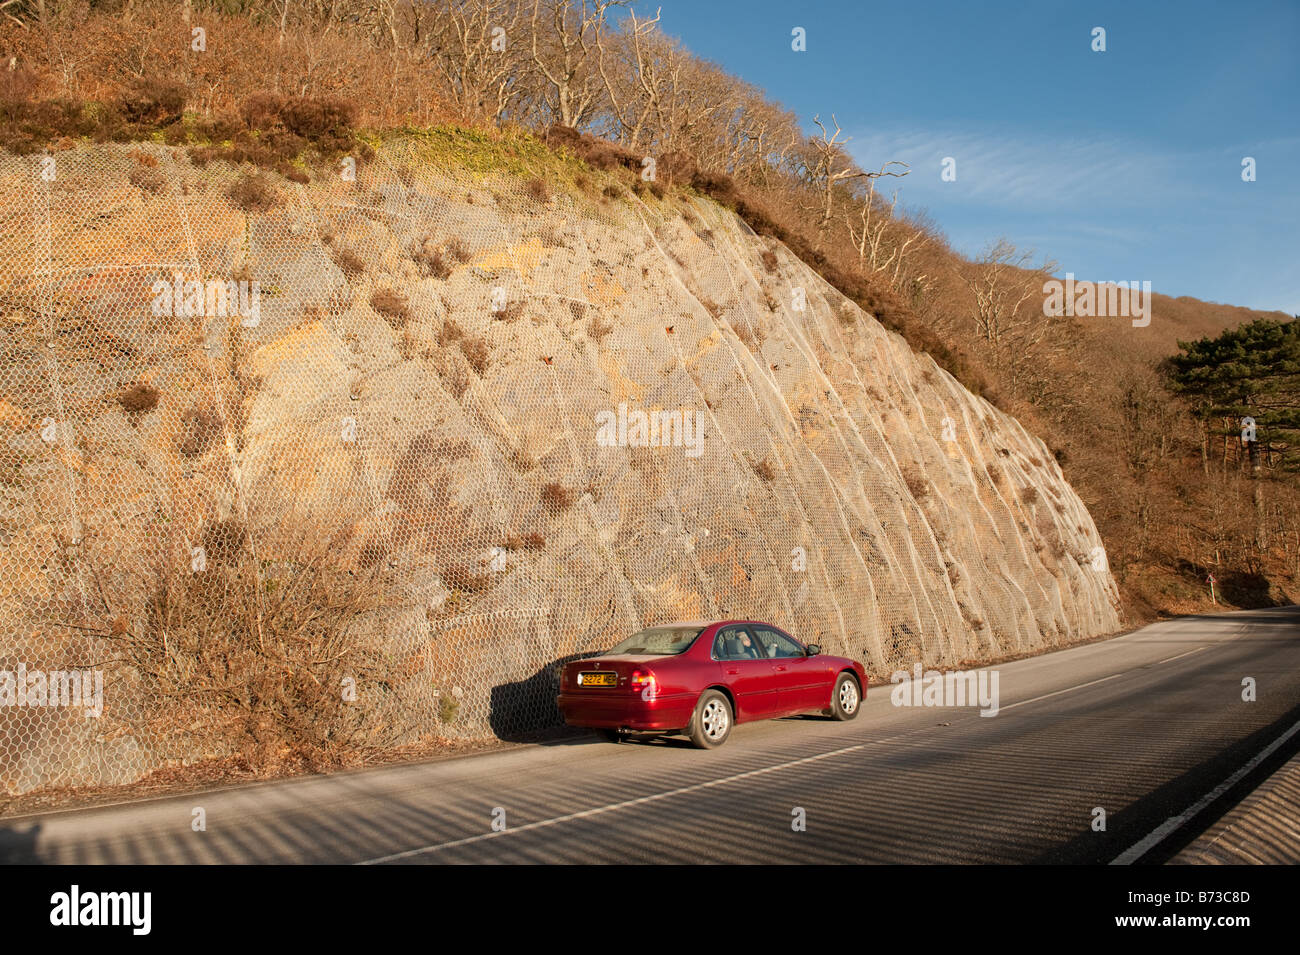 Embankment cutting contained within metal meshing to prevent loose rocks from falling on to road A493 near Aberdyfi - Stock Image